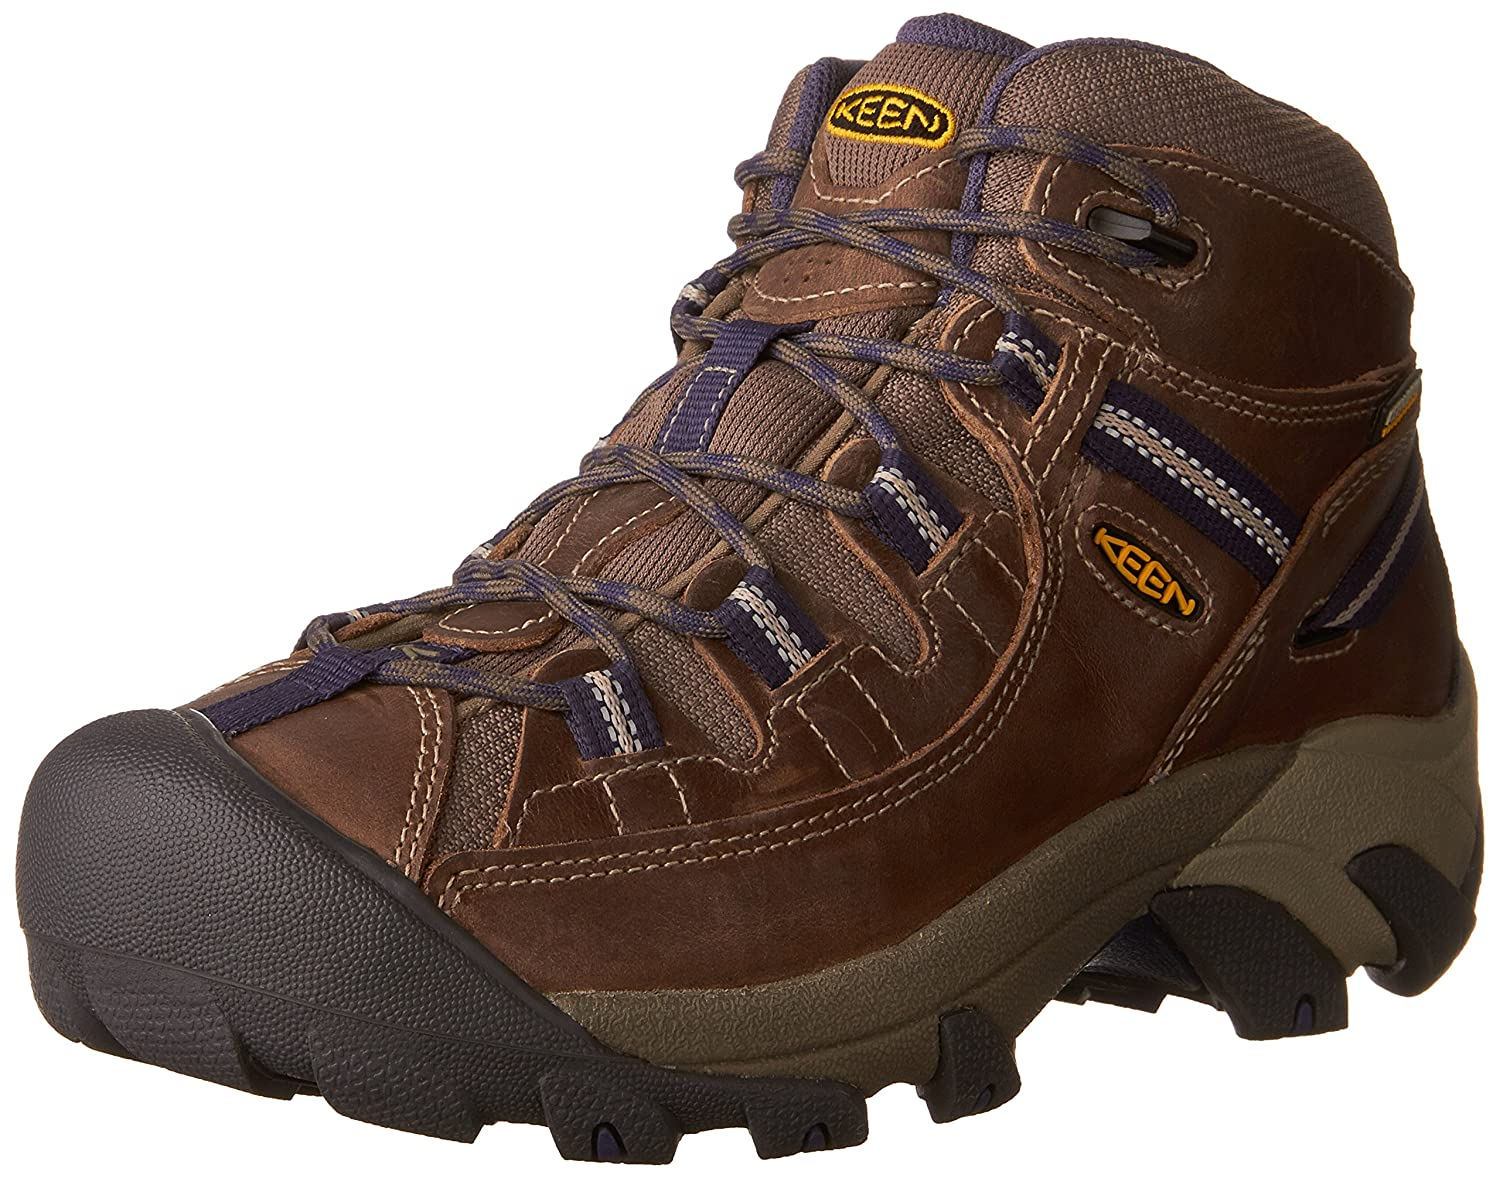 KEEN Women's Targhee II Mid WP-w Hiking Boot B01H8G9Y9Q 10.5 B(M) US|Goat/Crown Blue